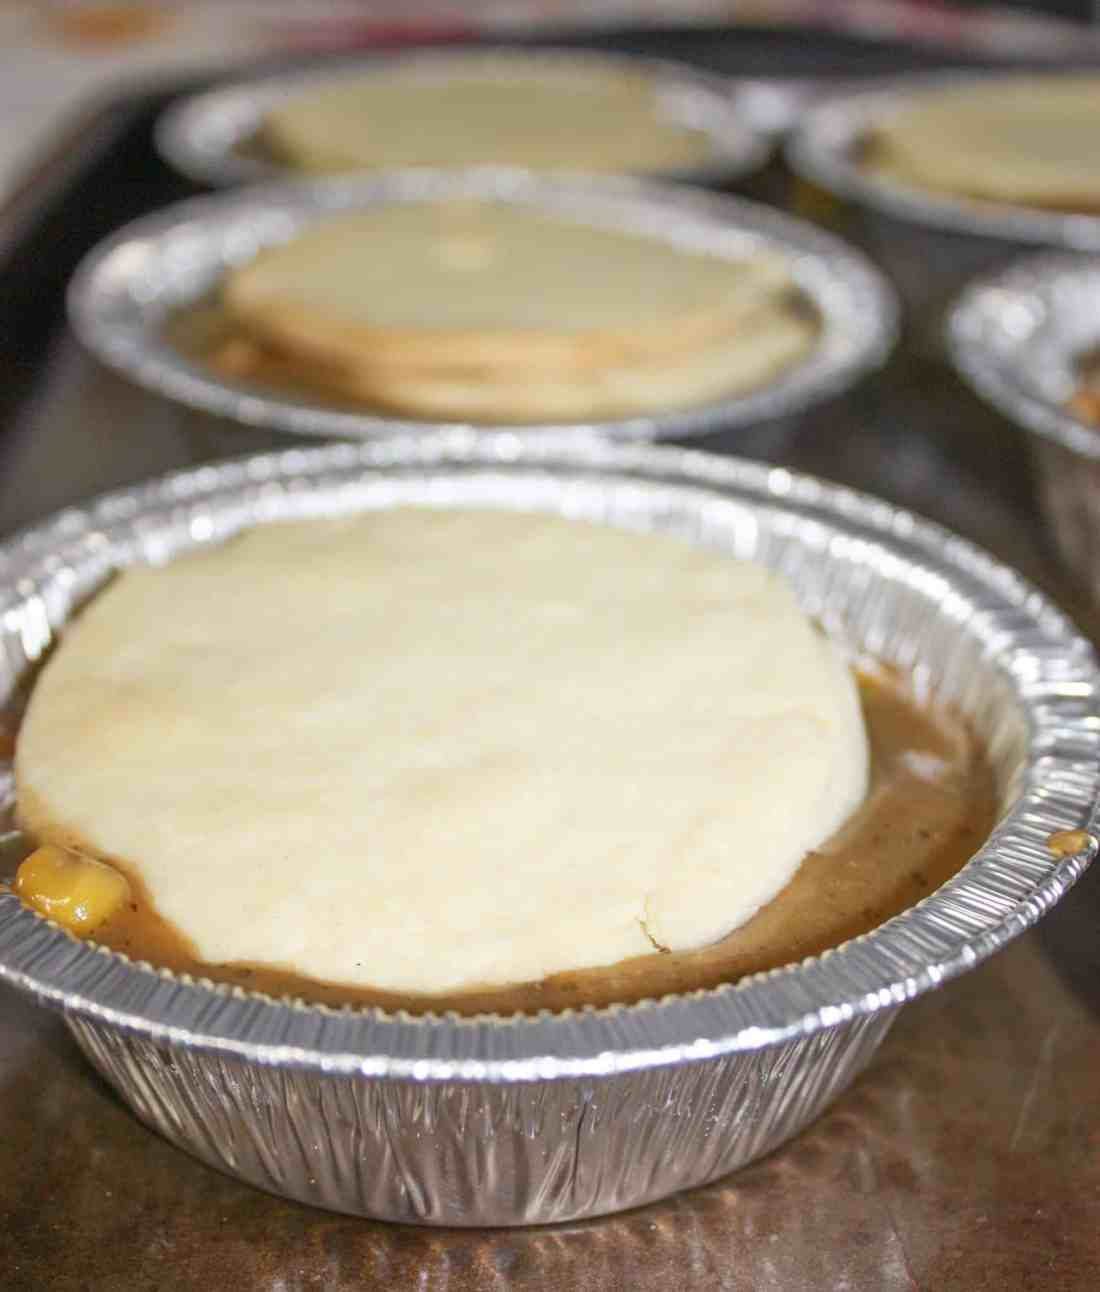 Now that Canadian Thanksgiving is behind us this Turkey Pot Pie is a quick and easy way to use up some of that leftover turkey!